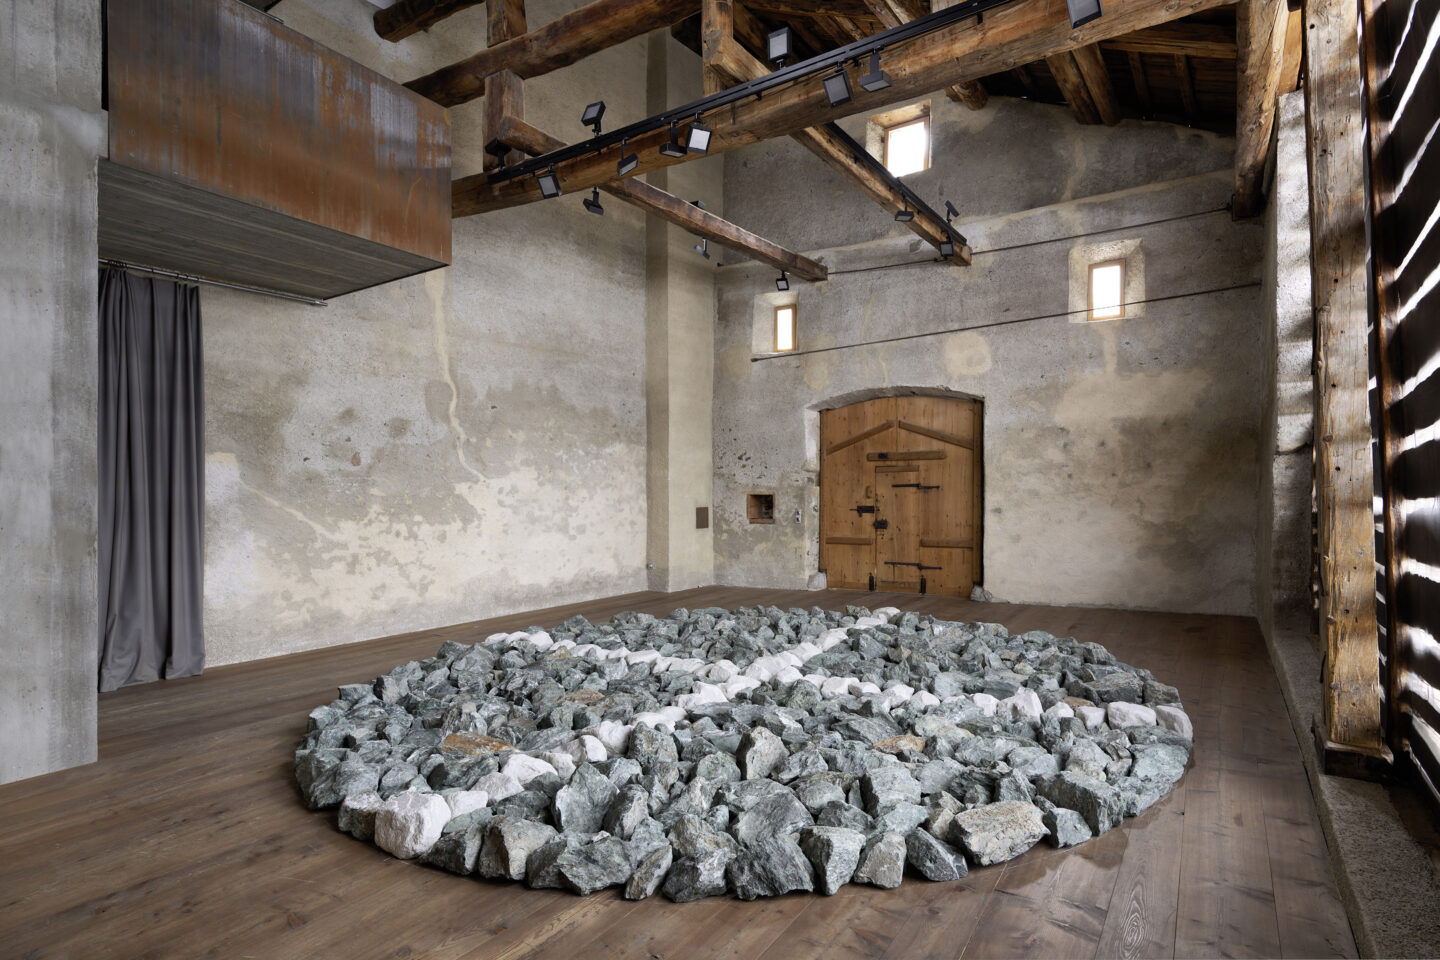 Exhibition View Groupshow «Absolutely Tschudi; view on Richard Long, Cardinal Points, 2019» at Galerie Tschudi, Zuoz, 2019 / Photo: Ralph Feiner, Malans / Courtesy: the artists and Galerie Tschudi, Zuoz